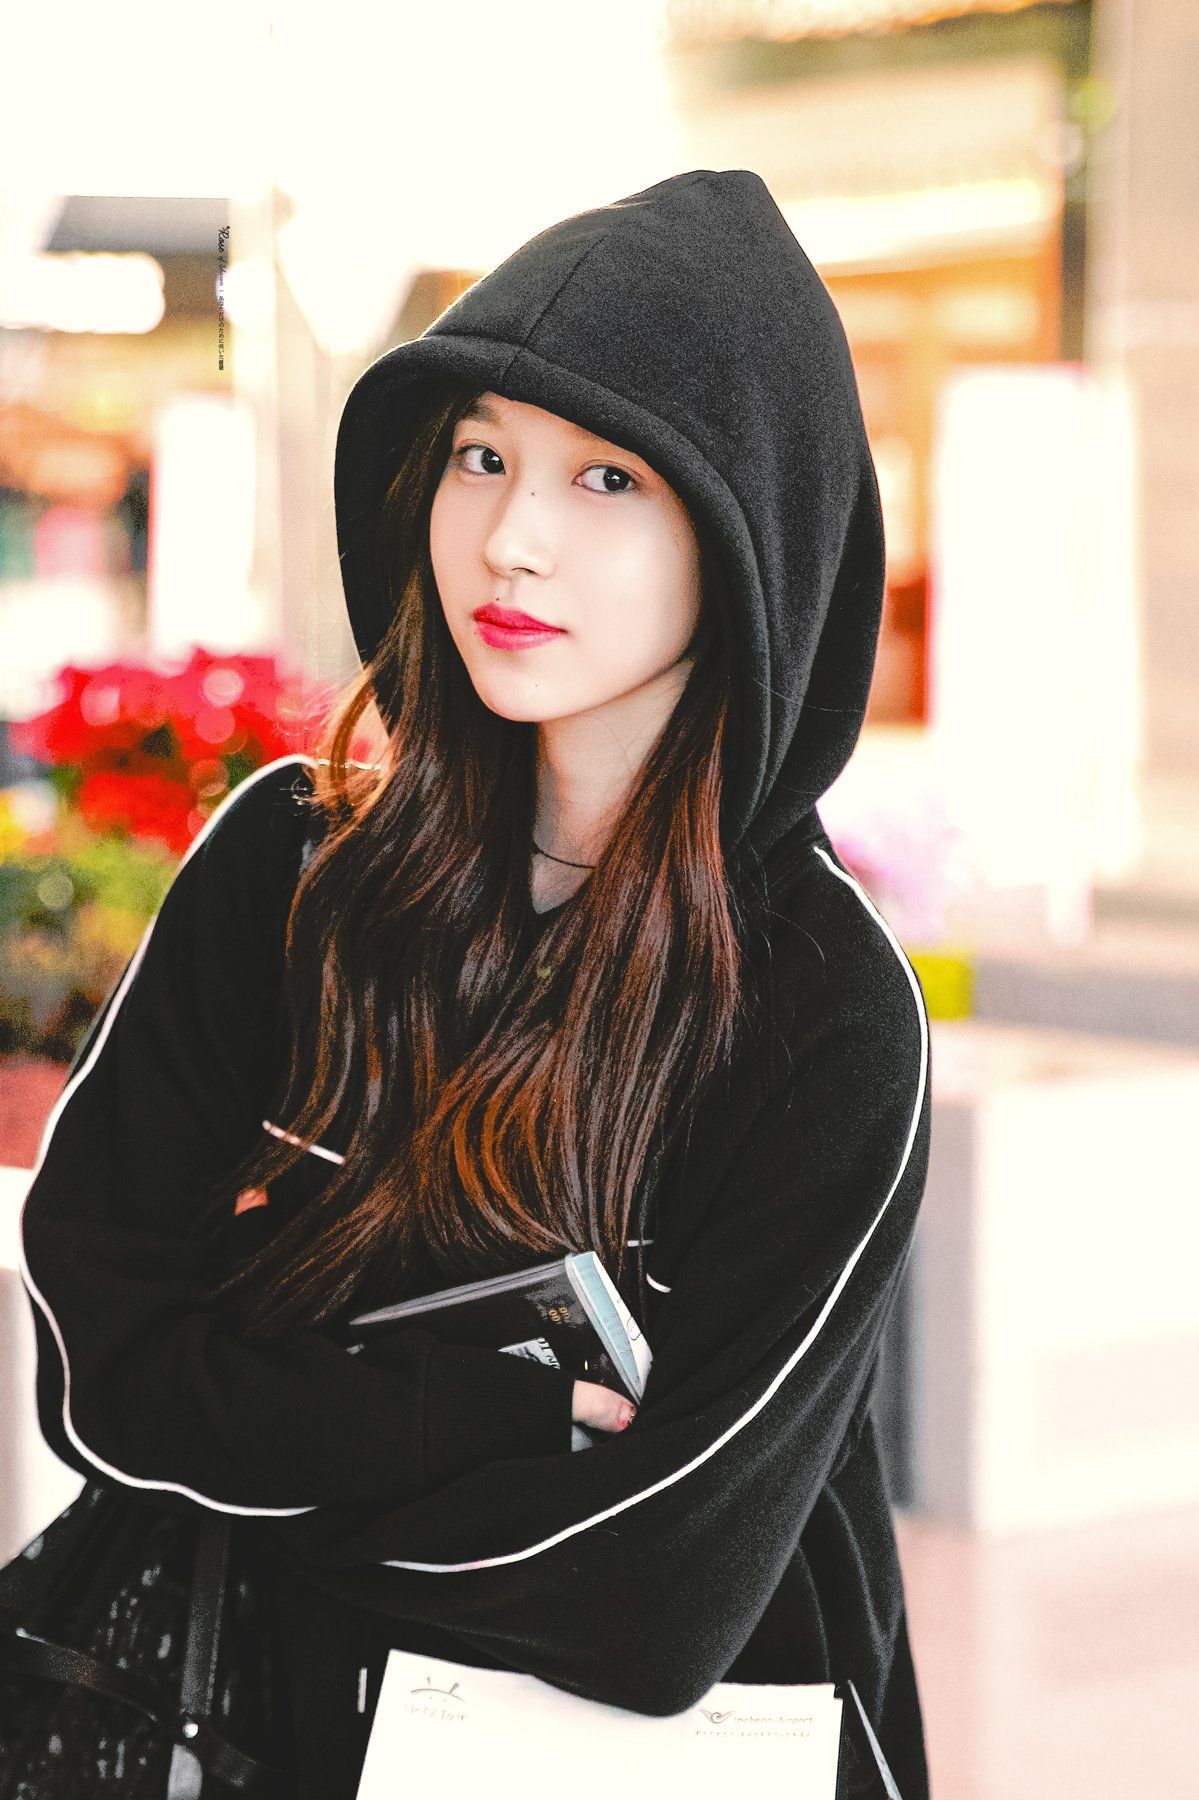 Pin by Lulamulala on Twice Mina in 2020 | Red velvet